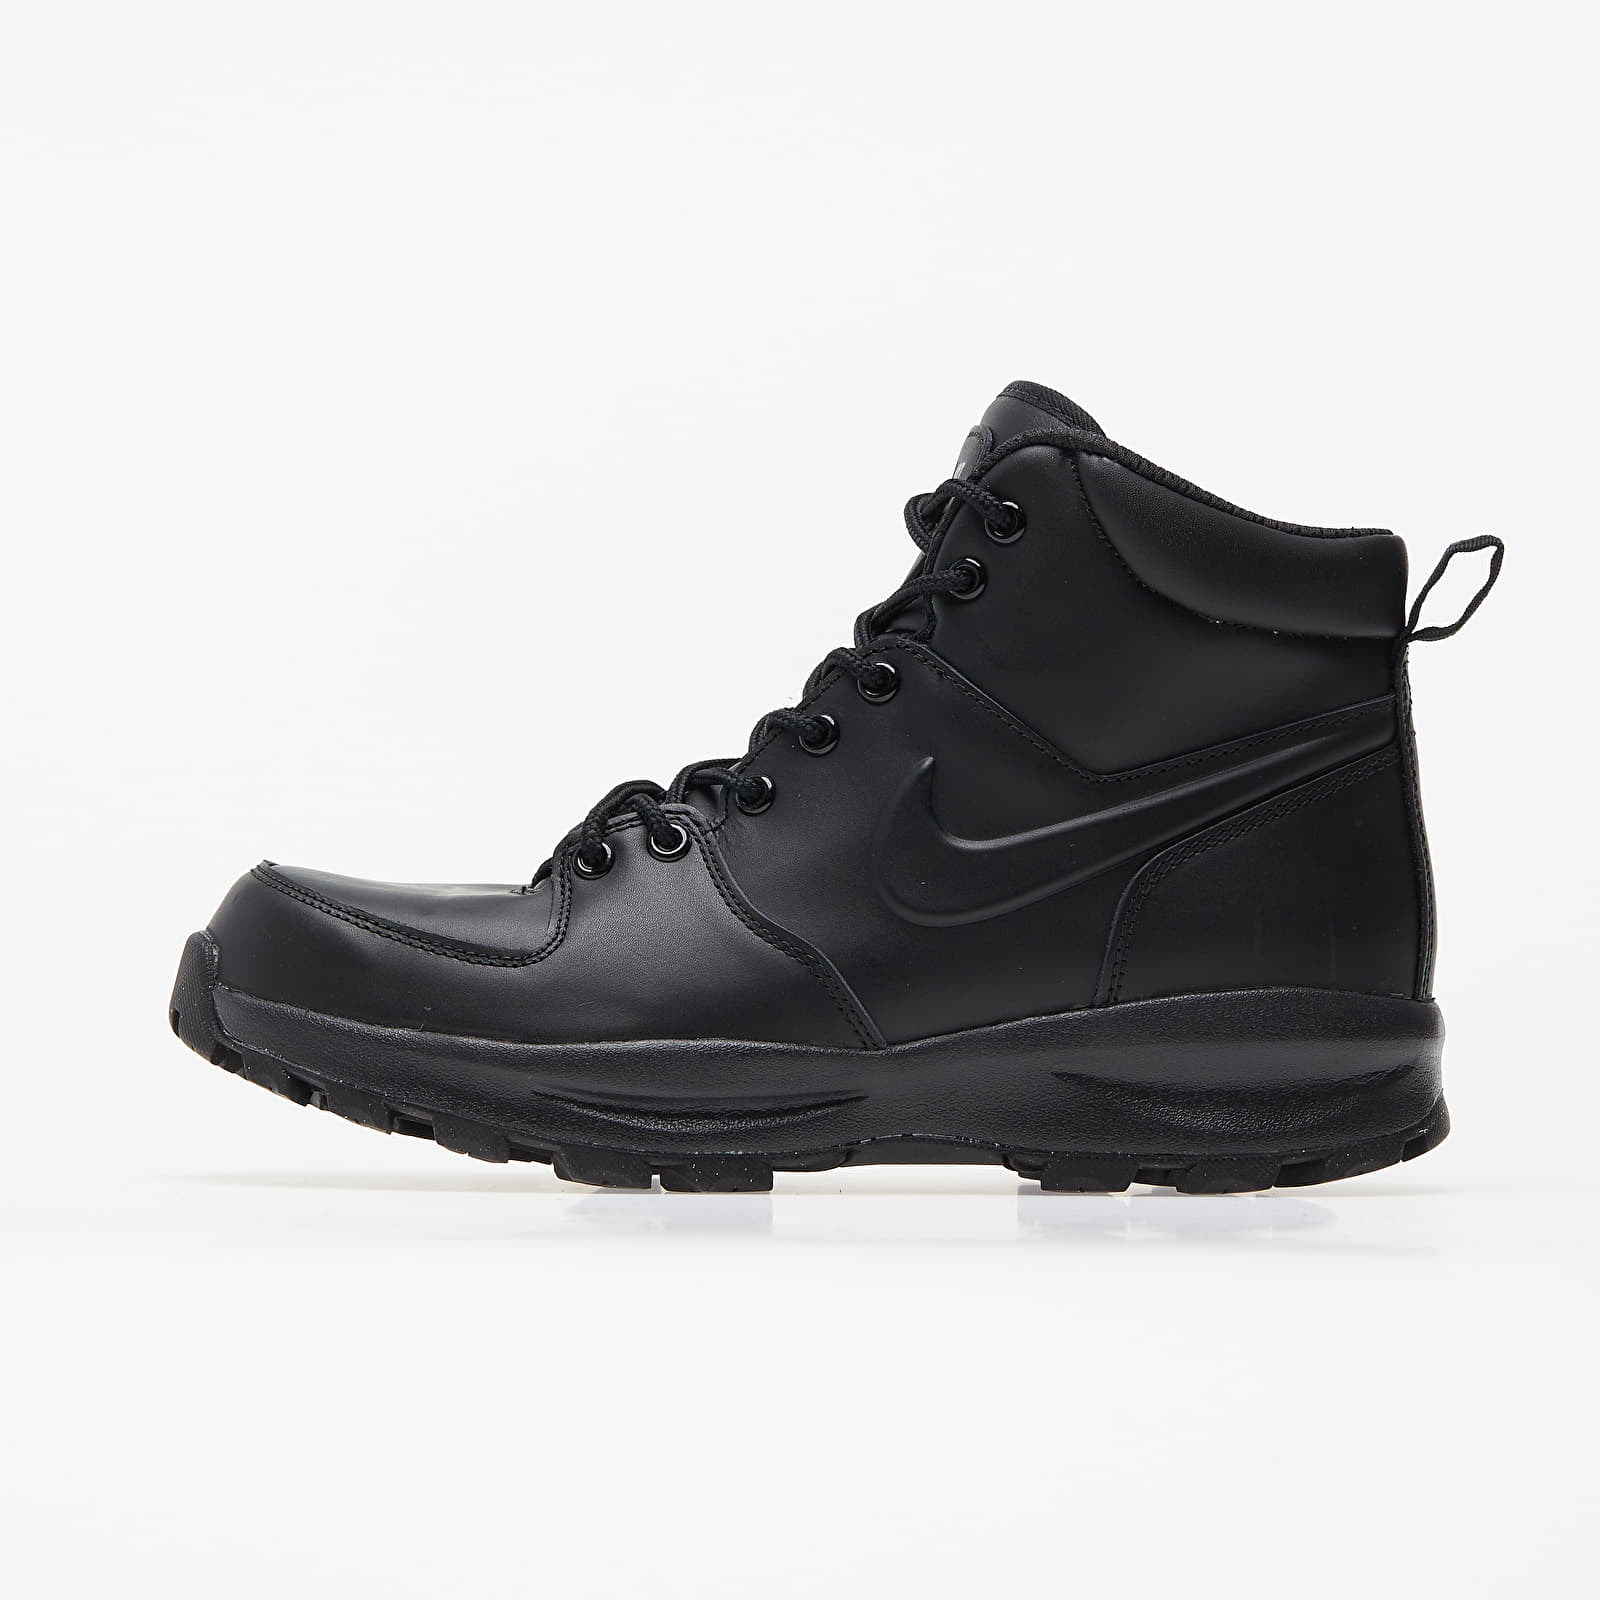 Nike Manoa Leather Black/ Black-Black EUR 40.5